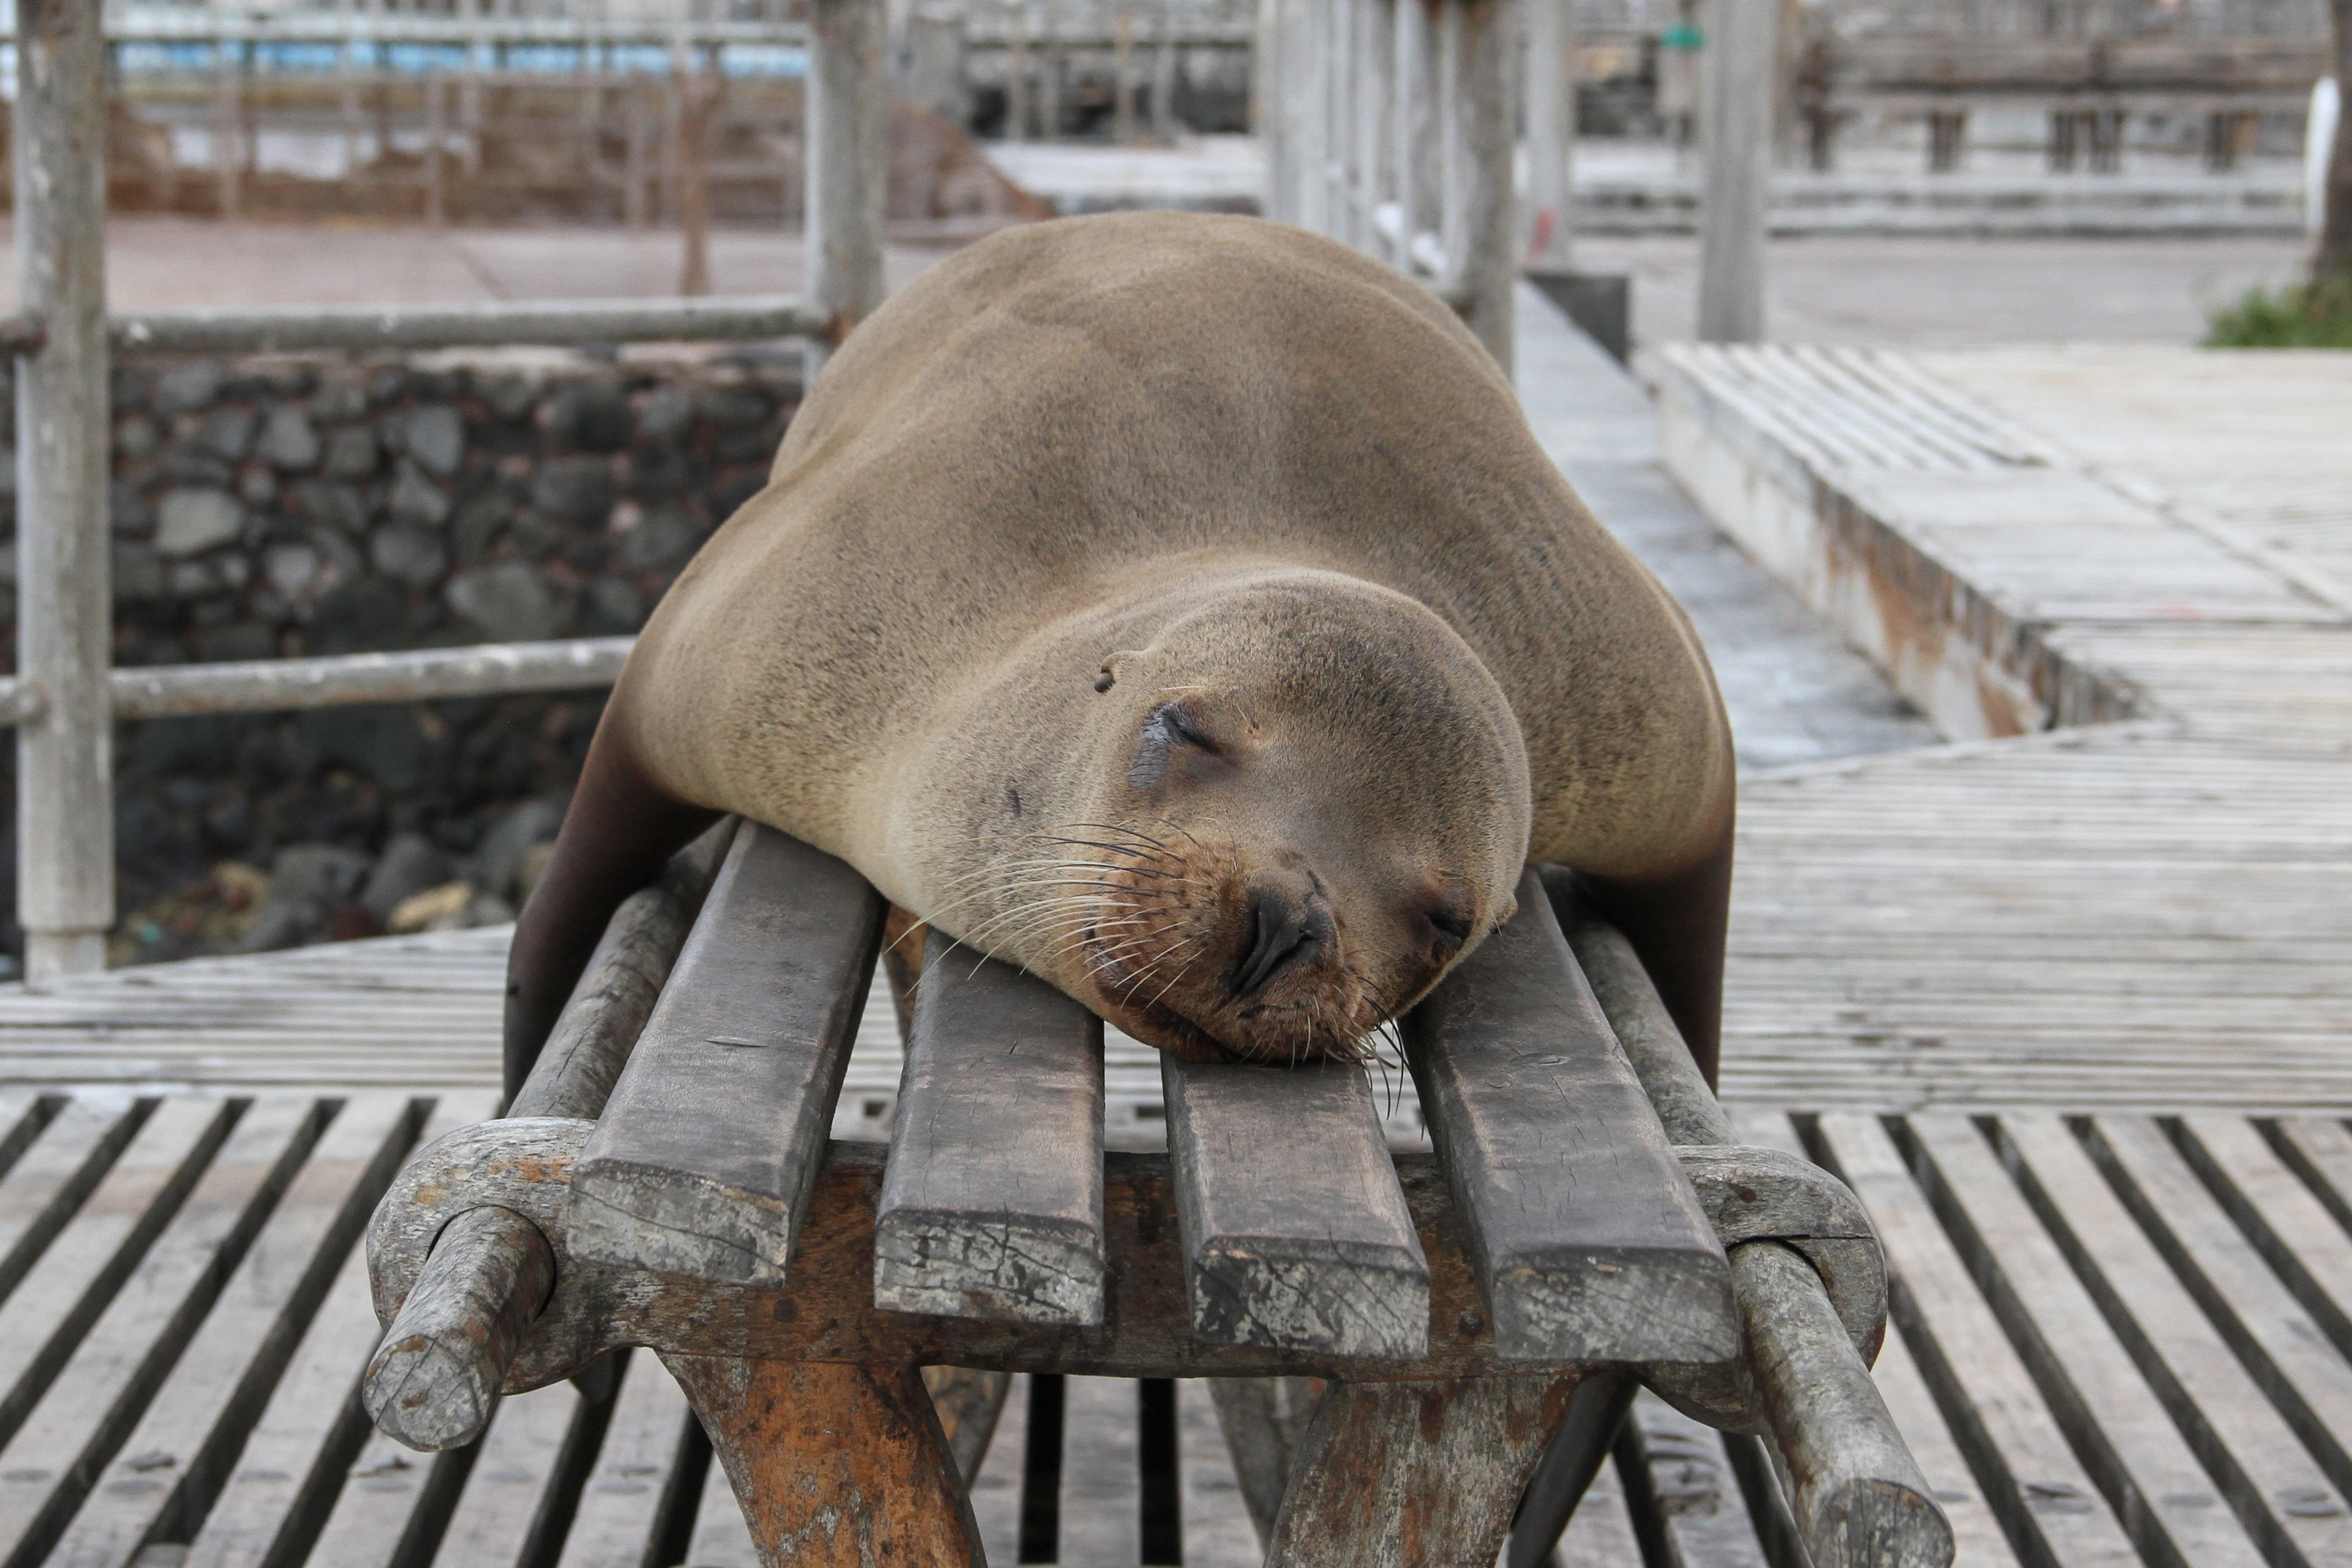 histamine sleep shows a sea lion asleep on a bench